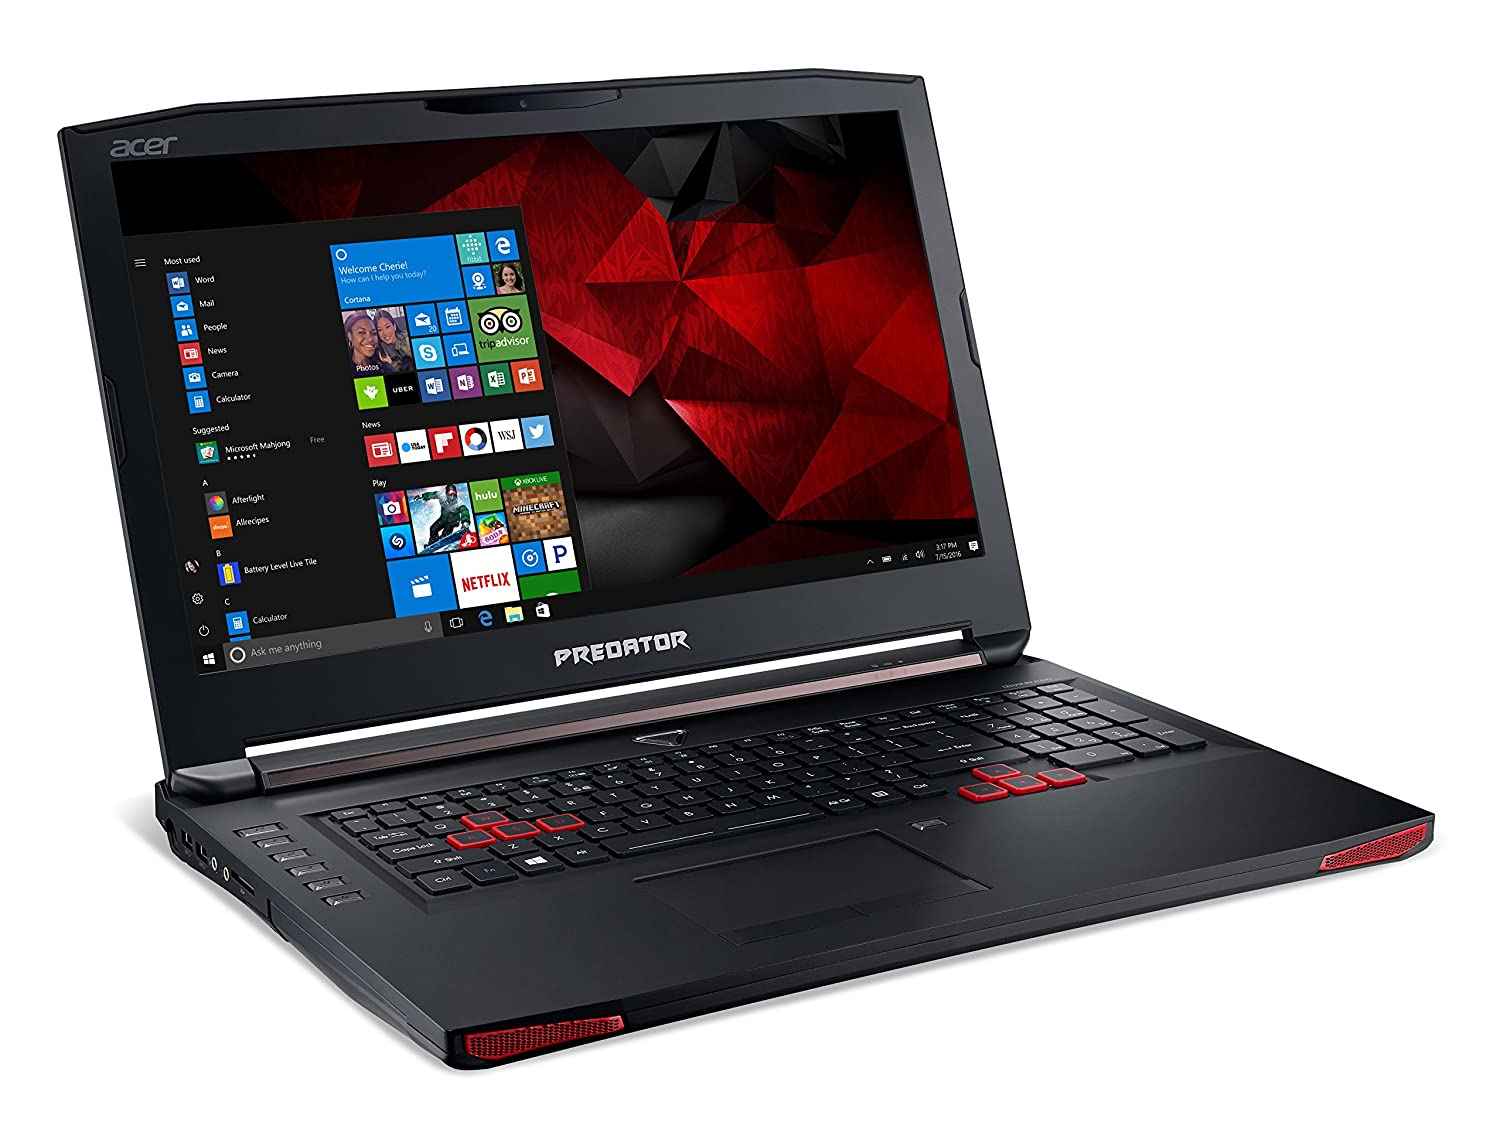 "Acer Predator 17 Gaming Laptop, Core i7, GeForce GTX 1060, 17.3"" Full HD, 16GB DDR4, 256GB SSD, 1TB HDD, G5-793-73NZ"